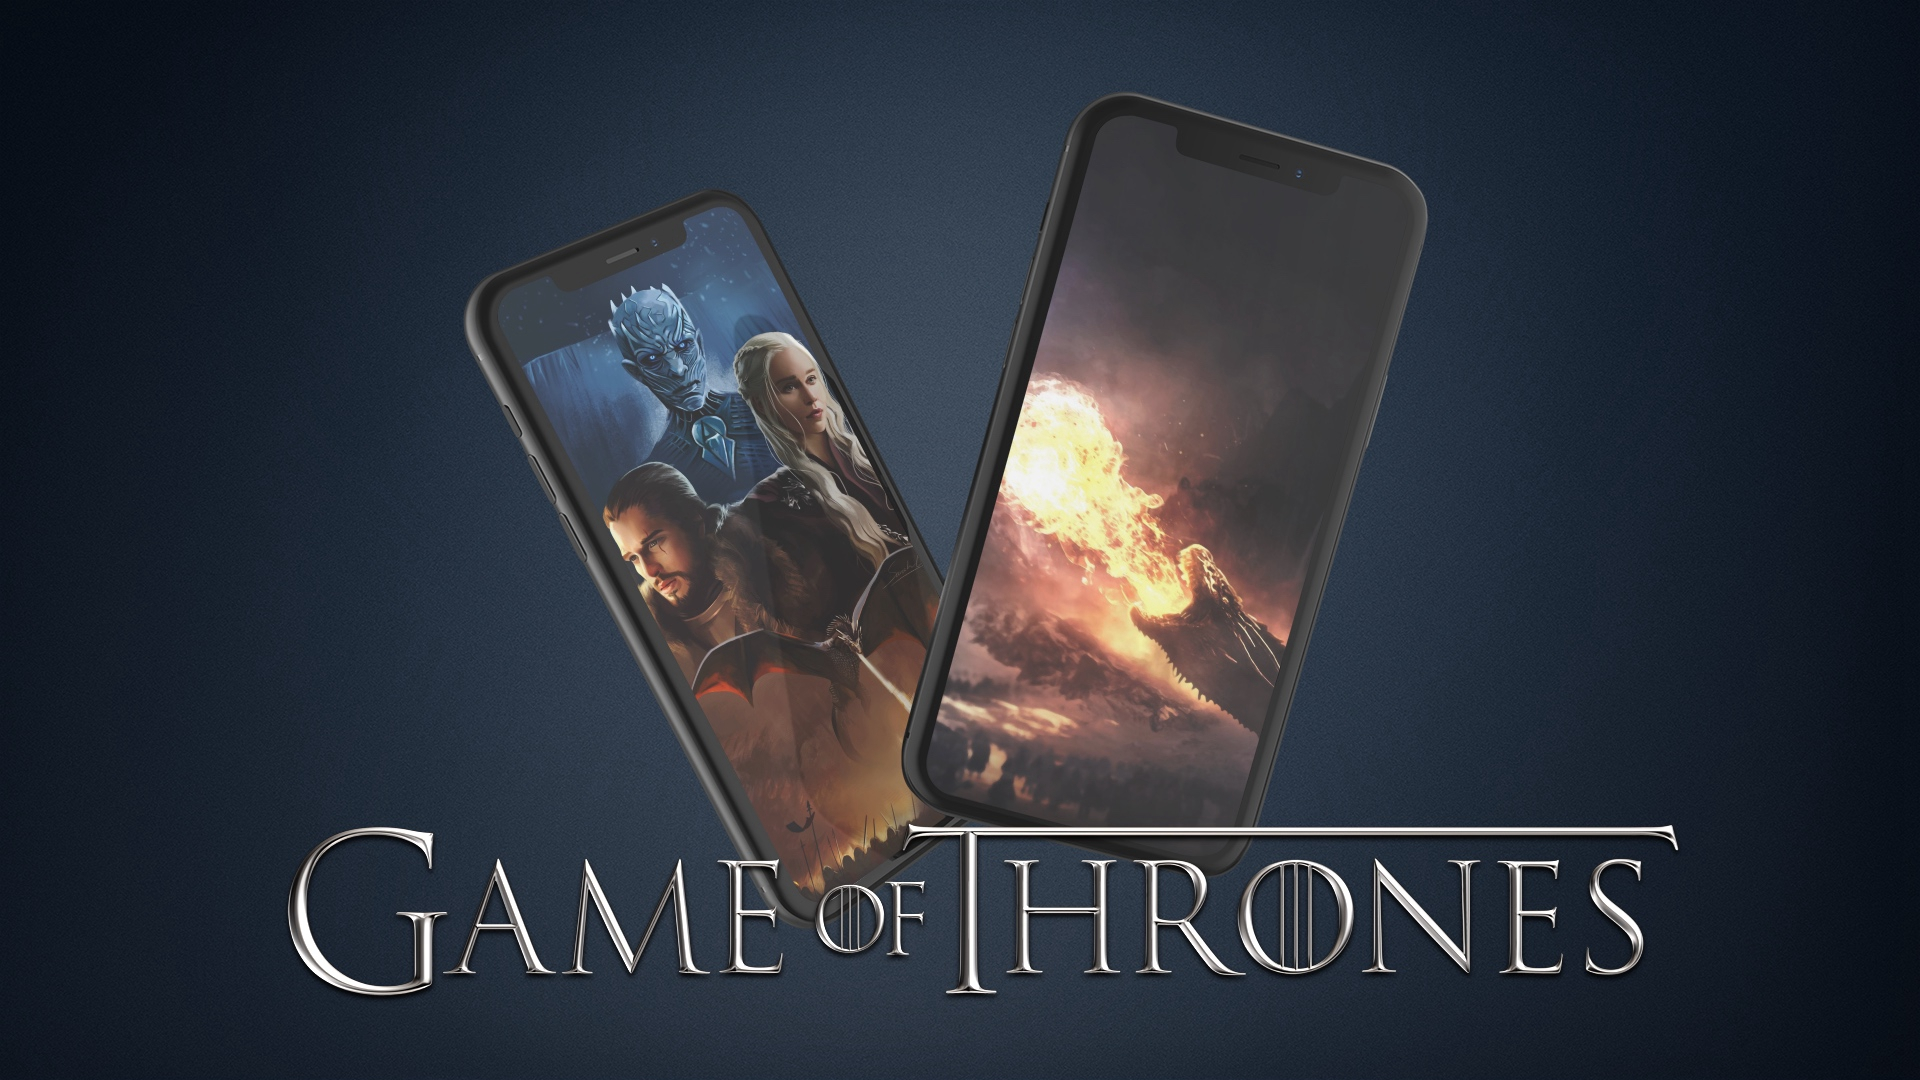 Game of Thrones iPhone wallpaper: Battle for Winterfell